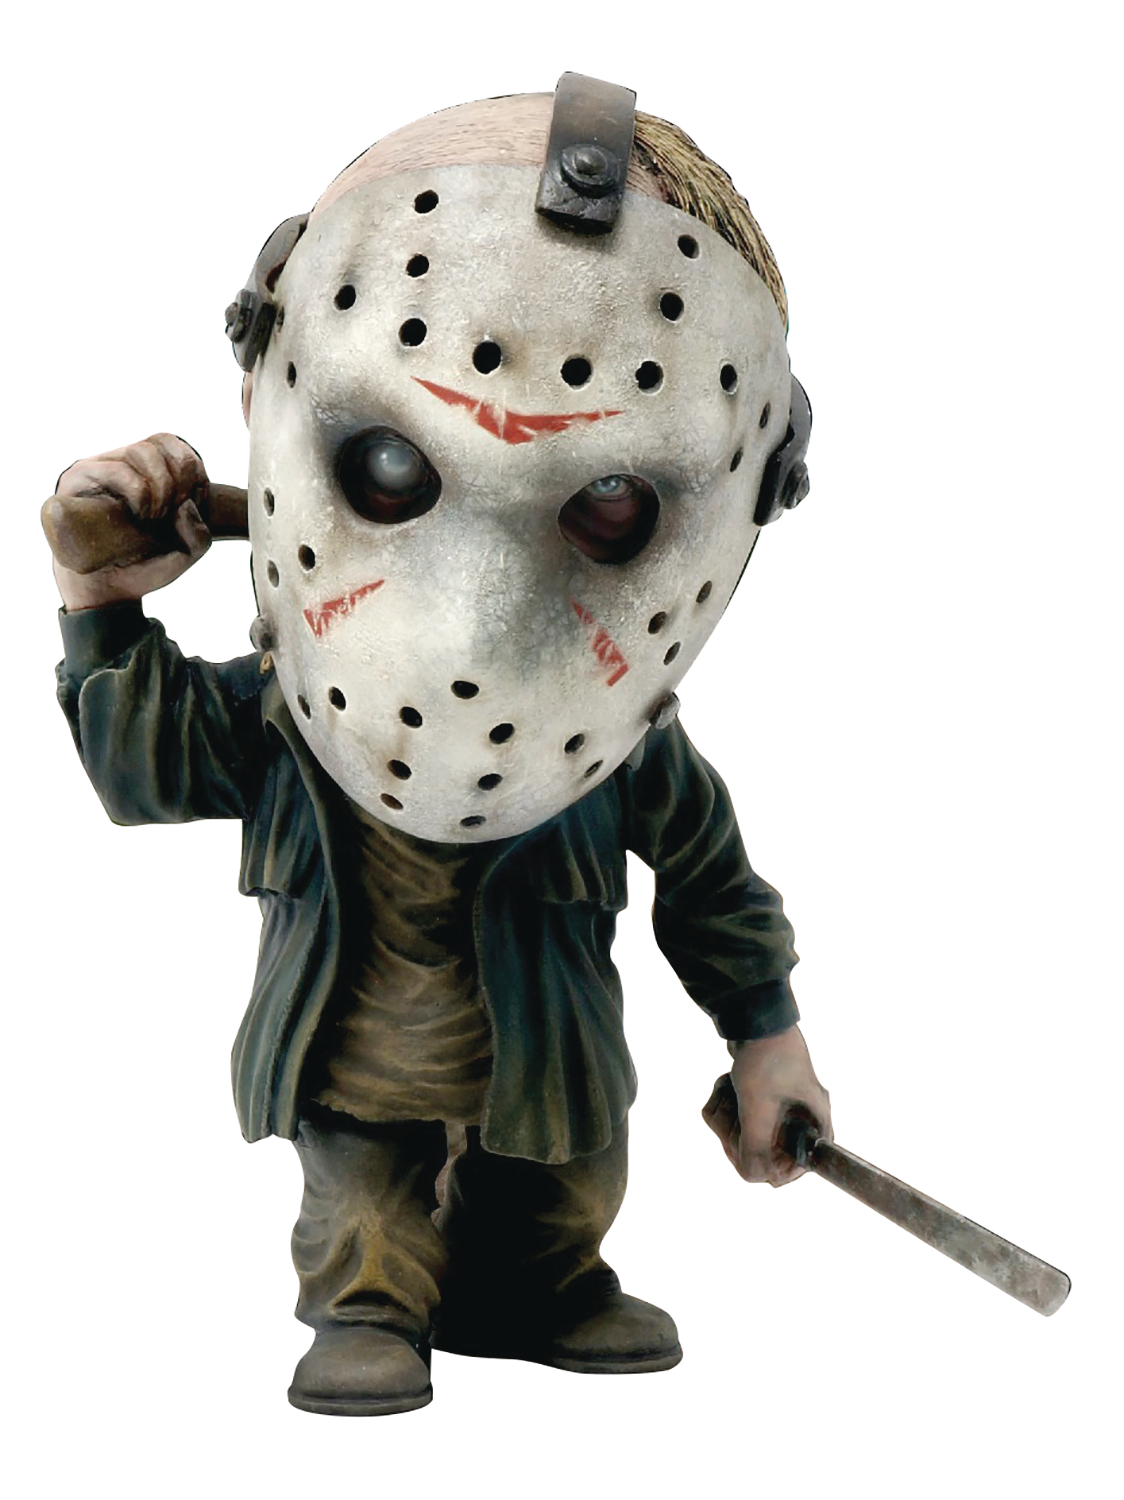 FRIDAY THE 13TH JASON DEFO REAL SOFT VINYL STATUE DLX VER (N